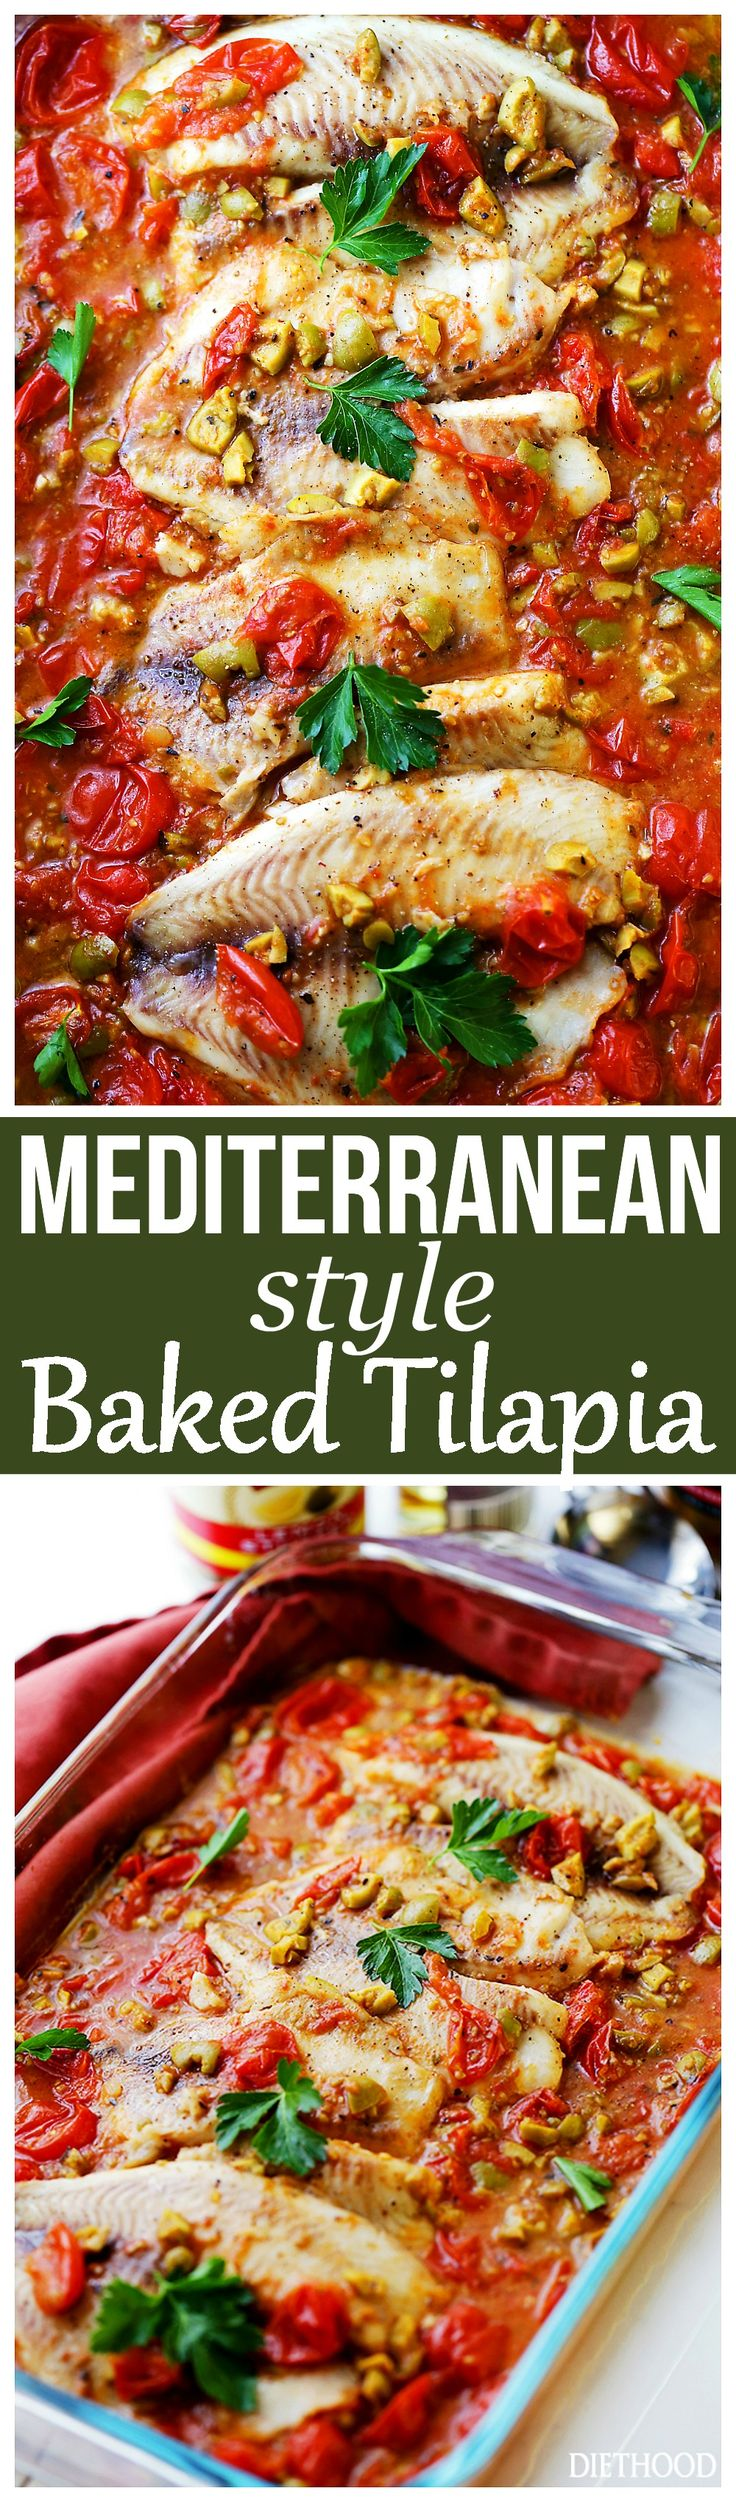 Mediterranean Style Baked Tilapia -  A quick, easy, and healthy fish recipe with olives and tomatoes that's perfect for a weeknight dinner, and fancy enough for a dinner party.